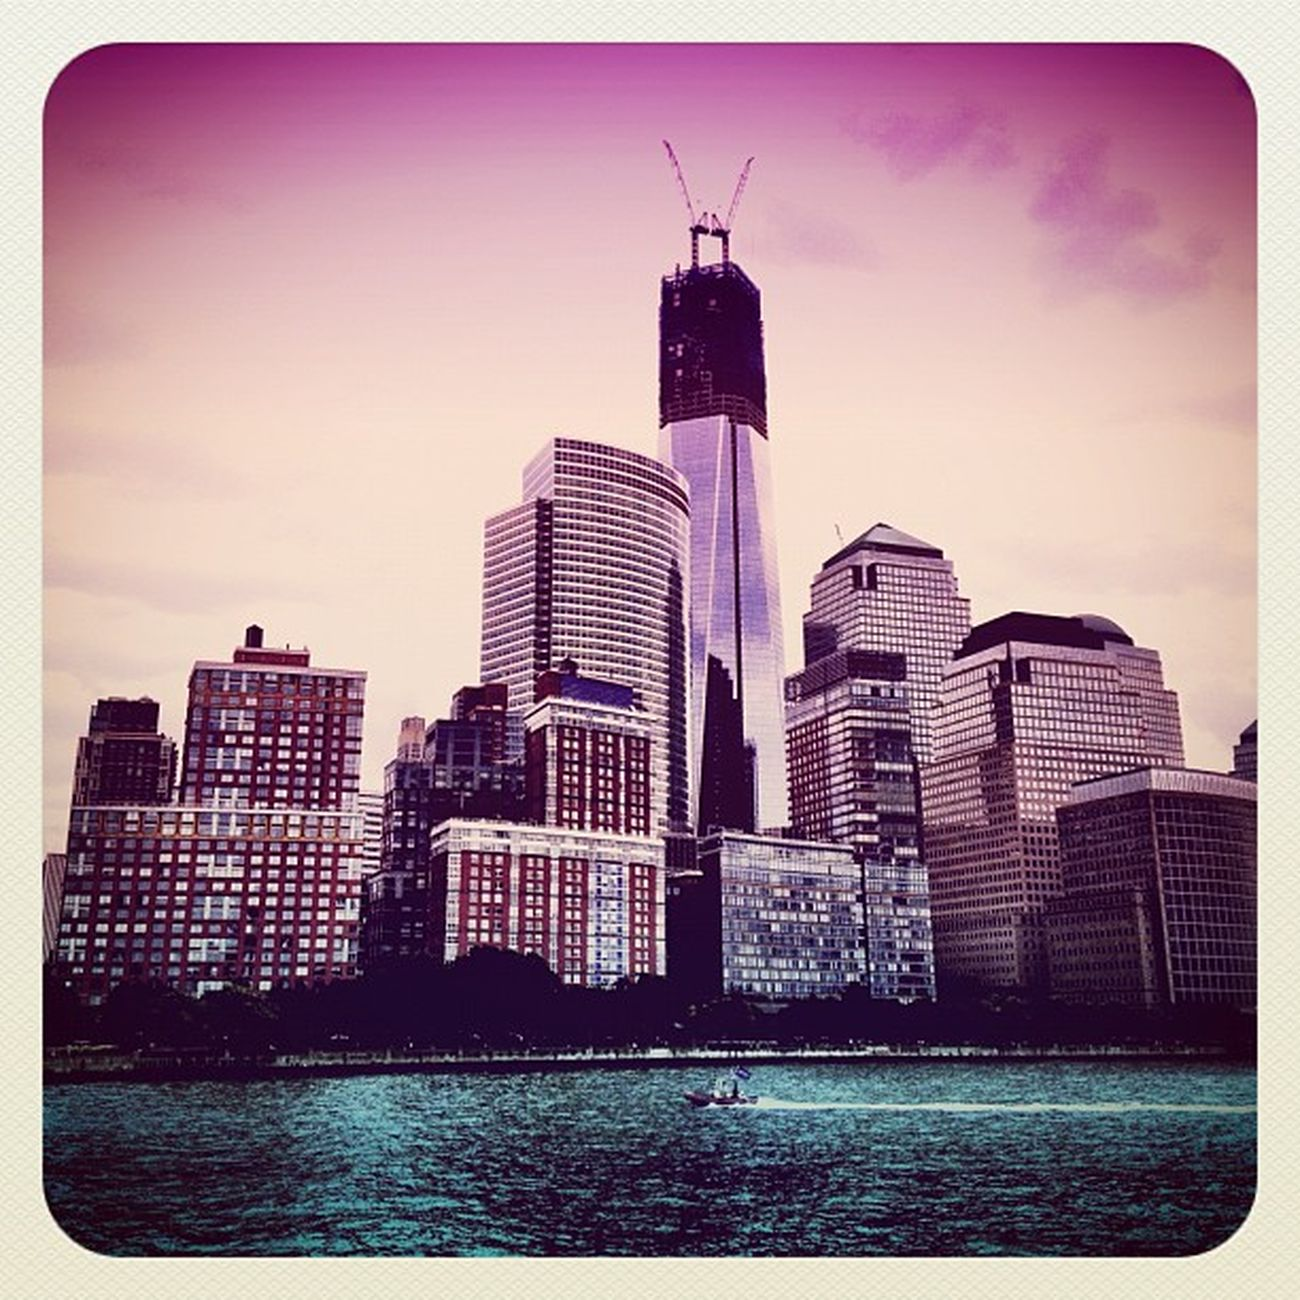 Manhattan with #freedom #tower #wtc #alanisko_usa #deluxe_fx #ebstyles_gf #empirestate #earlybirdlove #hudson #jj #jj_forum #manhattan #nyc #o2travel #skyscraper Deluxe_fx NYC Freedom Tower Skyscraper Hudson Manhattan WTC Jj  Earlybirdlove Jj_forum Empirestate Ebstyles_gf O2travel Alanisko_usa